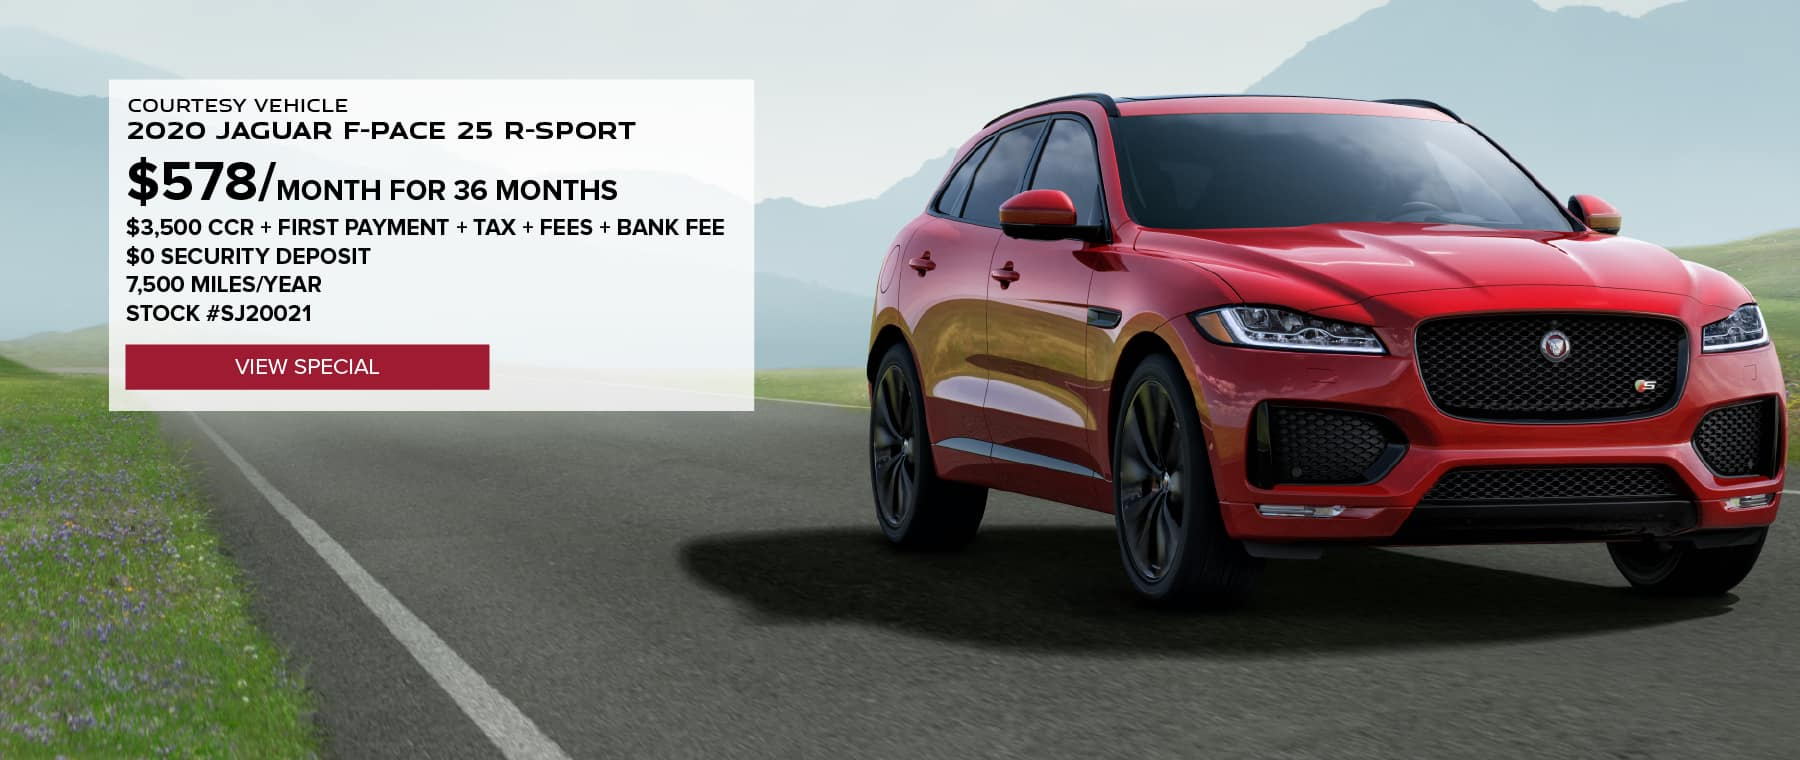 COURTESY VEHICLE 2020 JAGUAR F-PACE 25 R-SPORT. $578 PER MONTH FOR 36 MONTHS. $3,500 CCR + FIRST PAYMENT + TAX + FEES + BANK FEE. $0 SECURITY DEPOSIT. 7,500 MILES PER YEAR. STOCK #SJ20021. VIEW SPECIAL. RED JAGUAR F-PACE DRIVING DOWN ROAD IN VALLEY.